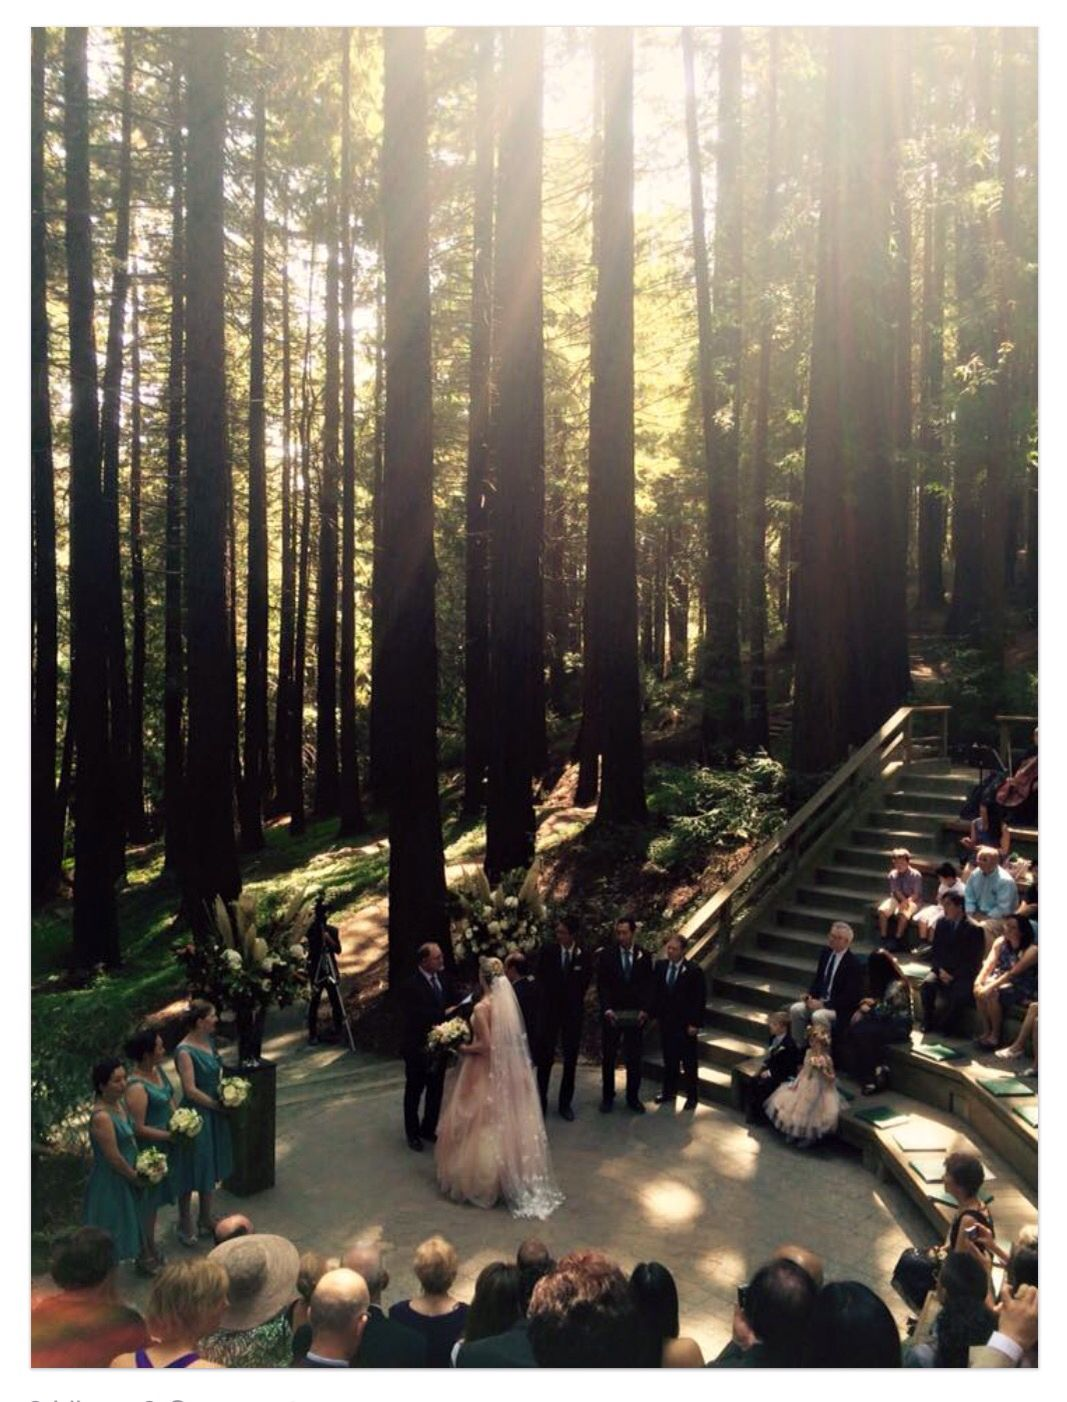 Wedding in the woods...gorgeous redwood trees are a dynamic backdrop! #AReveEvents www.AReveEvents.co